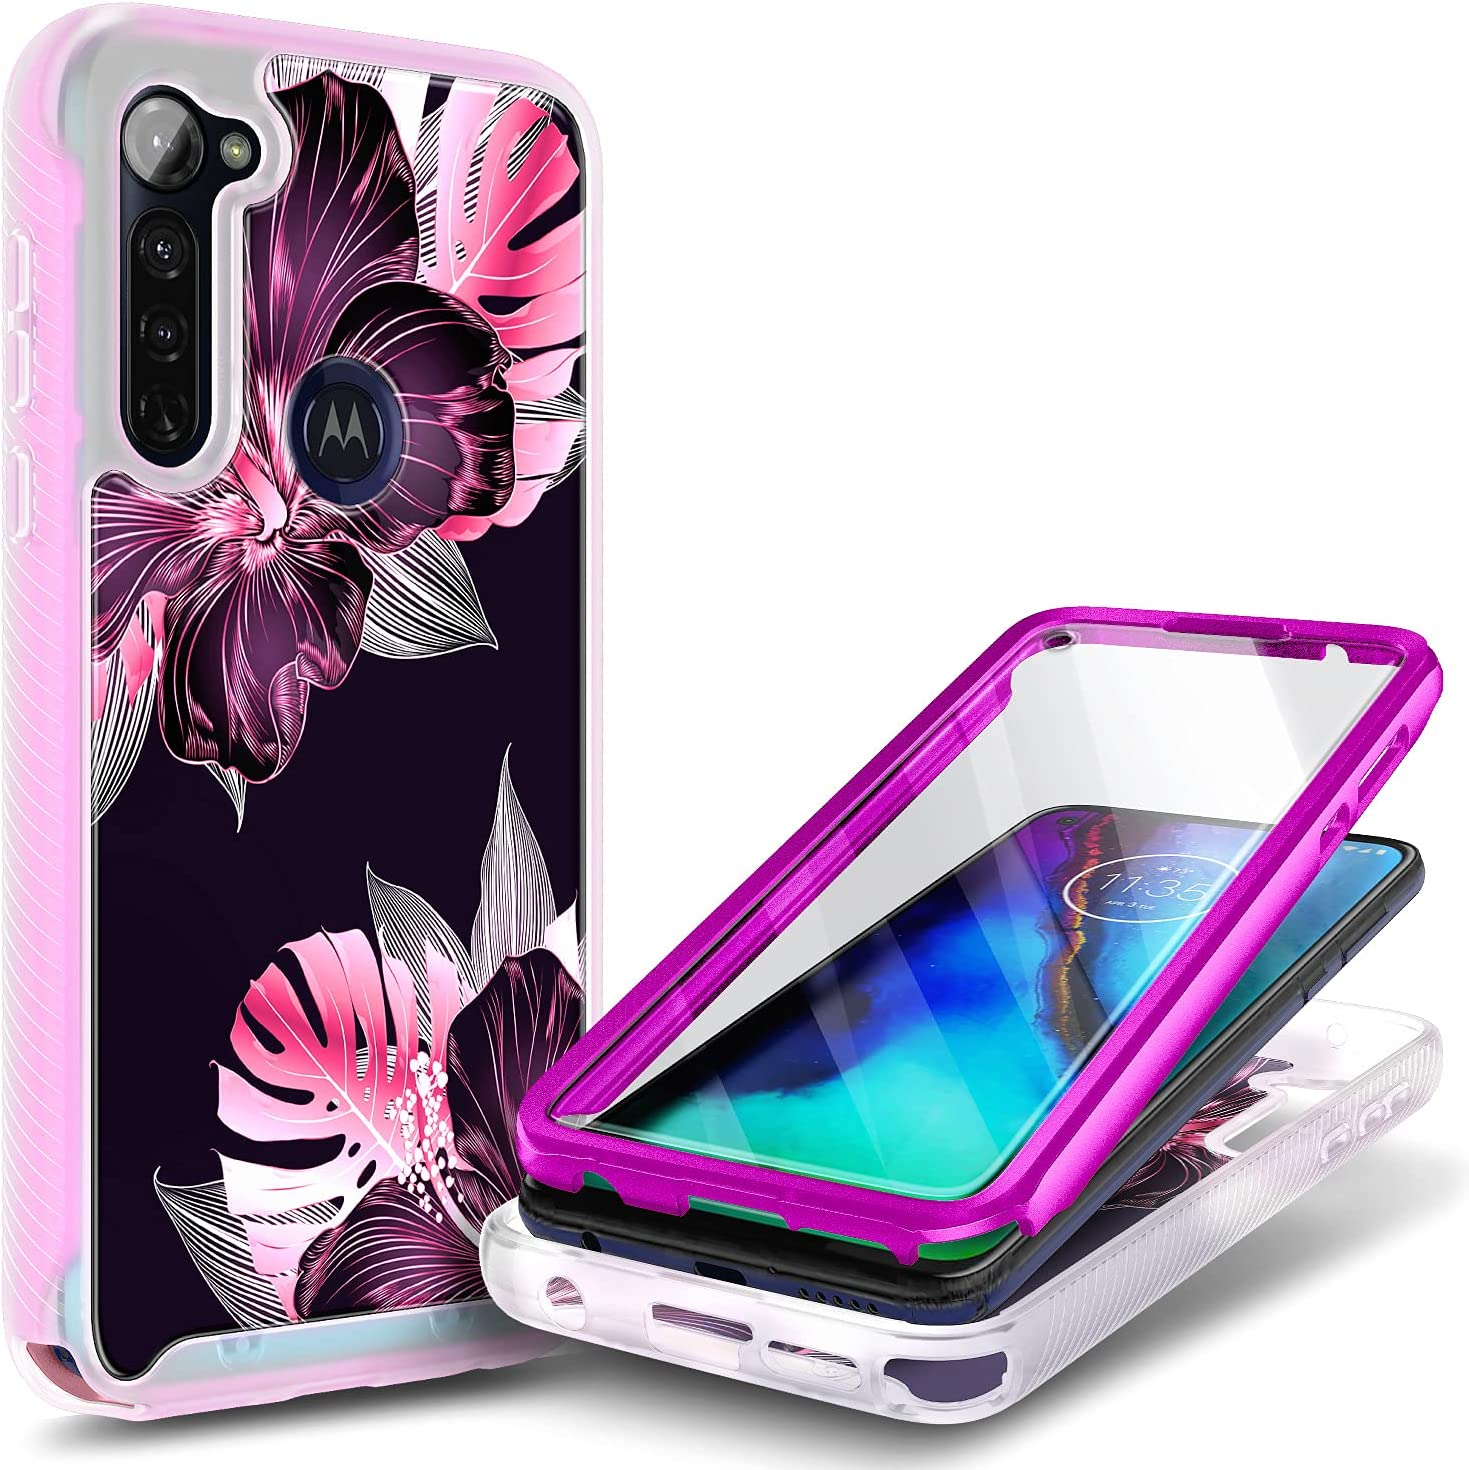 E-Began Moto G Stylus Case Ful Screen Colorado Springs Mall with Protector Super special price Built-in